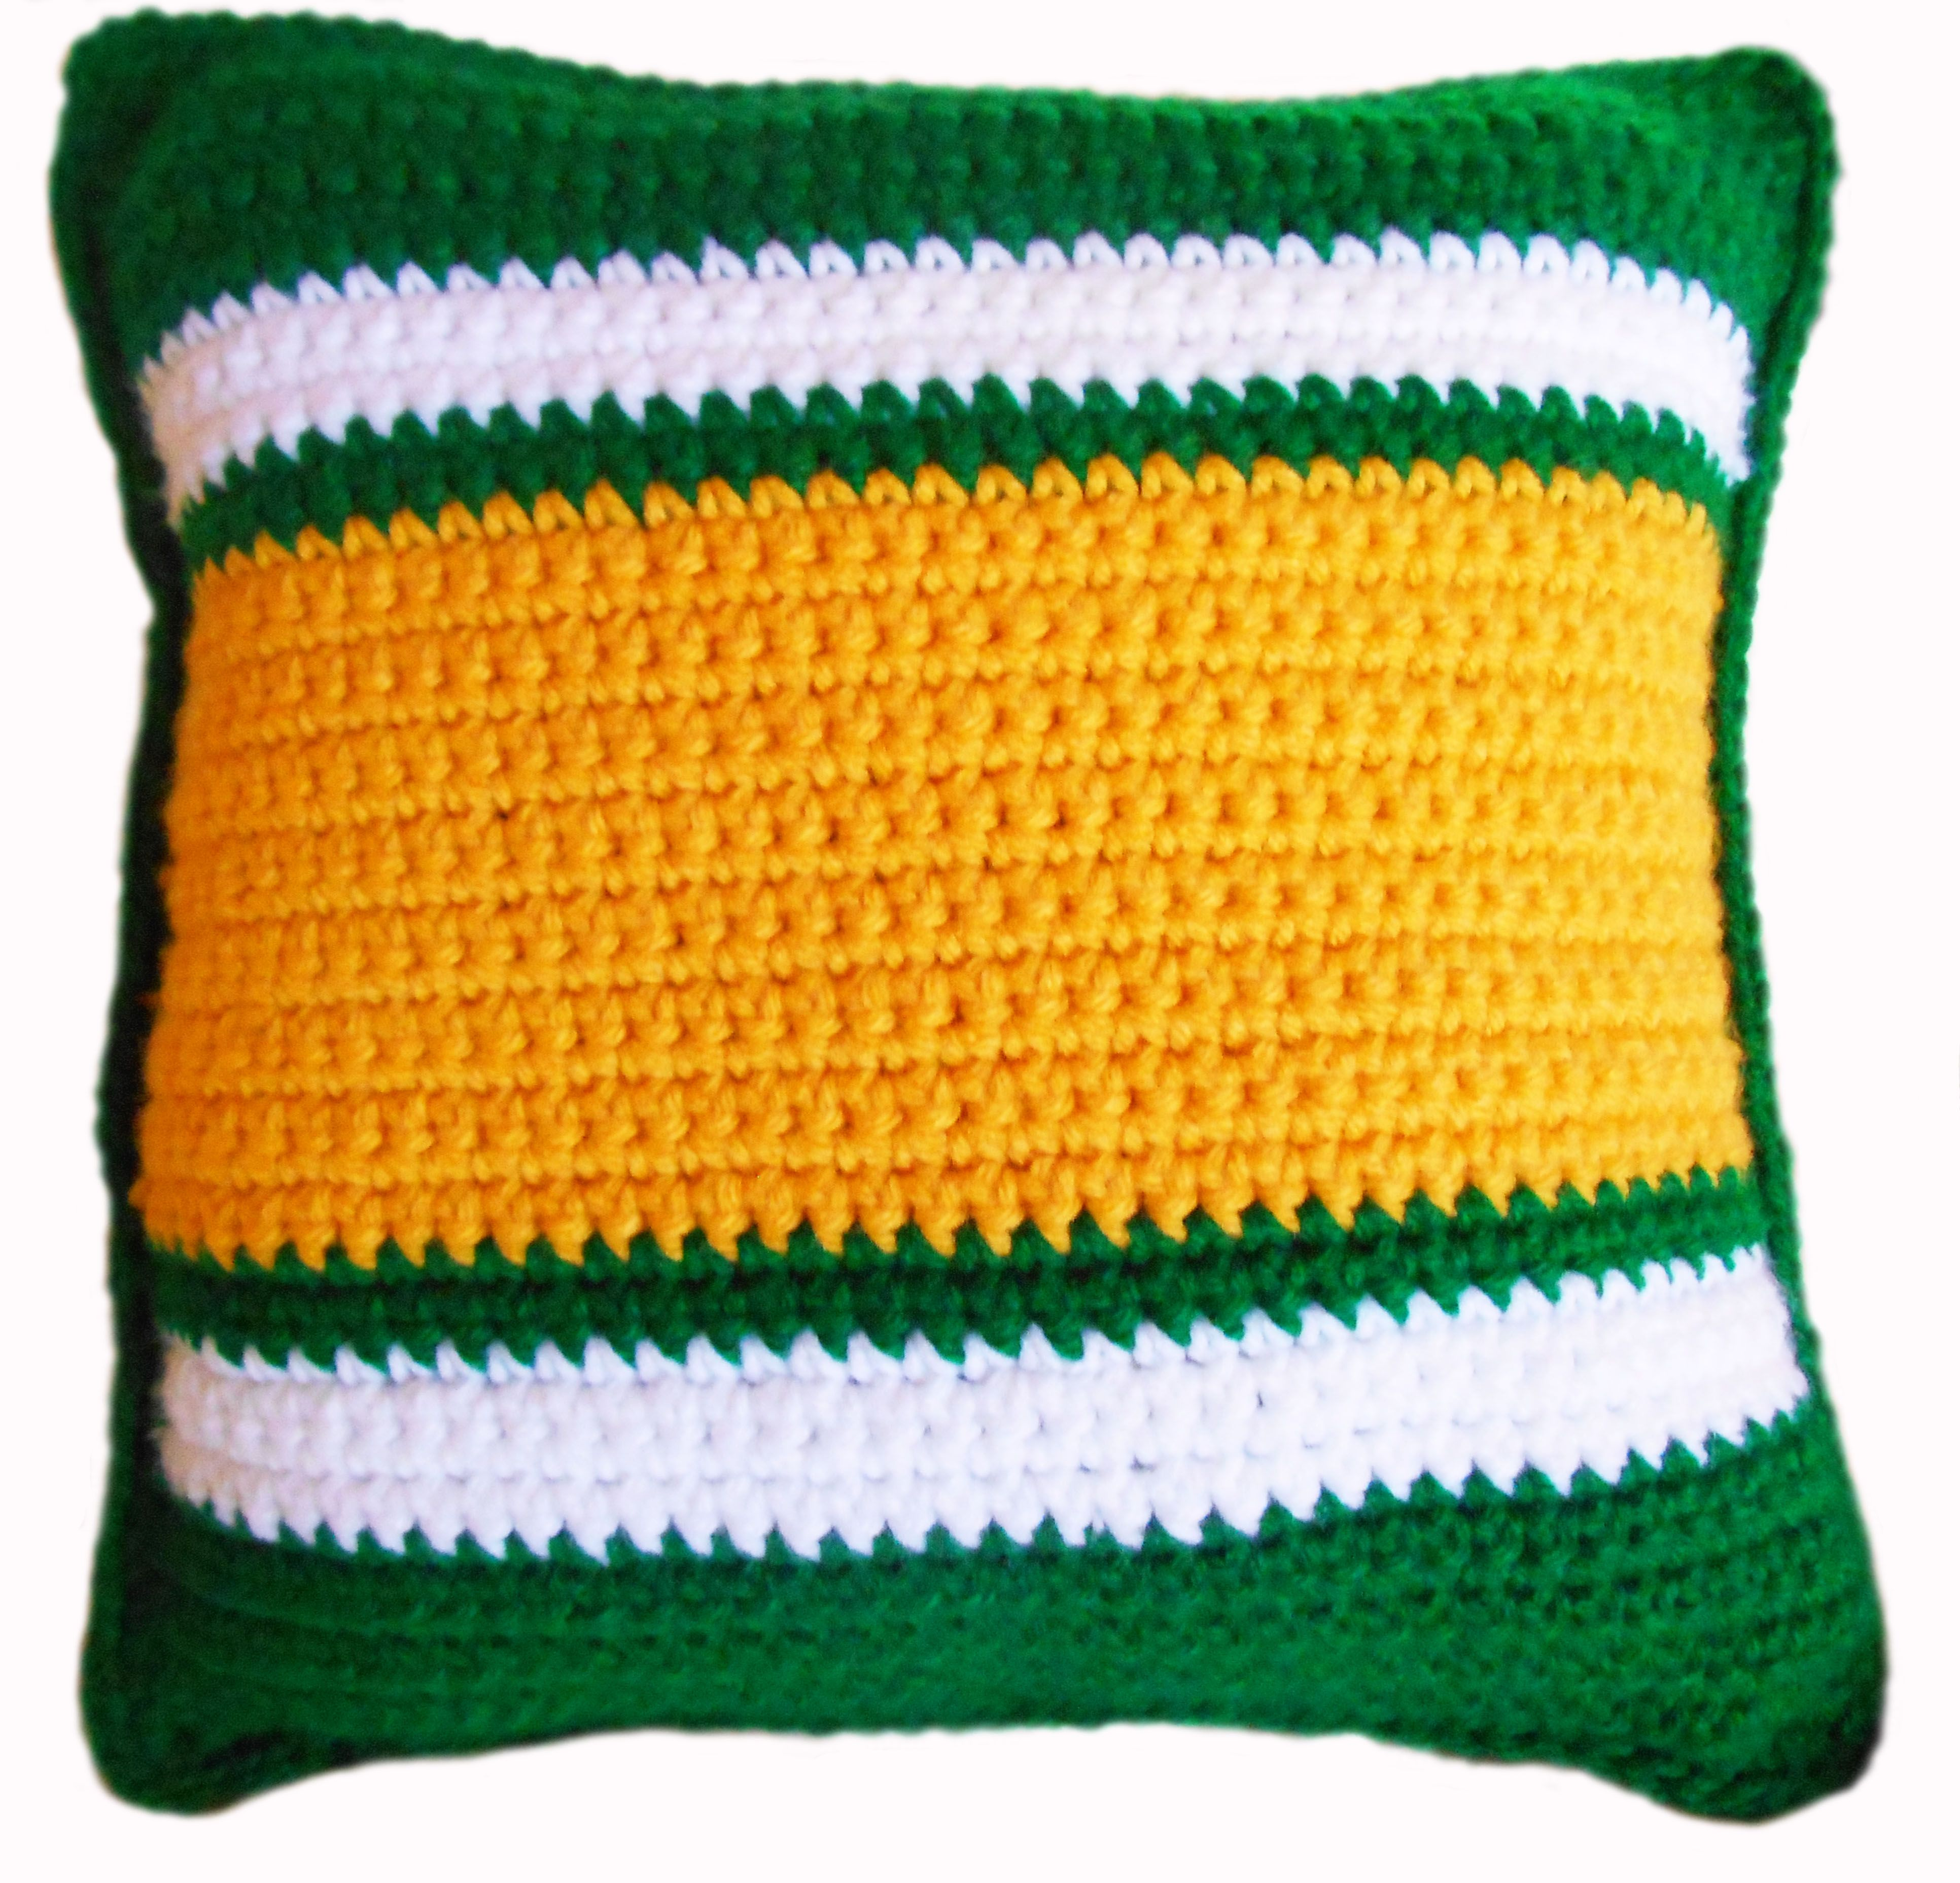 The wait's finally over: football is back, and it's time for you, FOOTBALL FANS, to gear up for the season ahead. Celebrate your favorite team and player with a custom crochet pillow showcasing your team's colors and your favorite player's number on the other side. This is a made to order item. Please state the NFL team and the player's number. And it should take 3-5 days to complete and also depending on the number of orders before you. $50.00